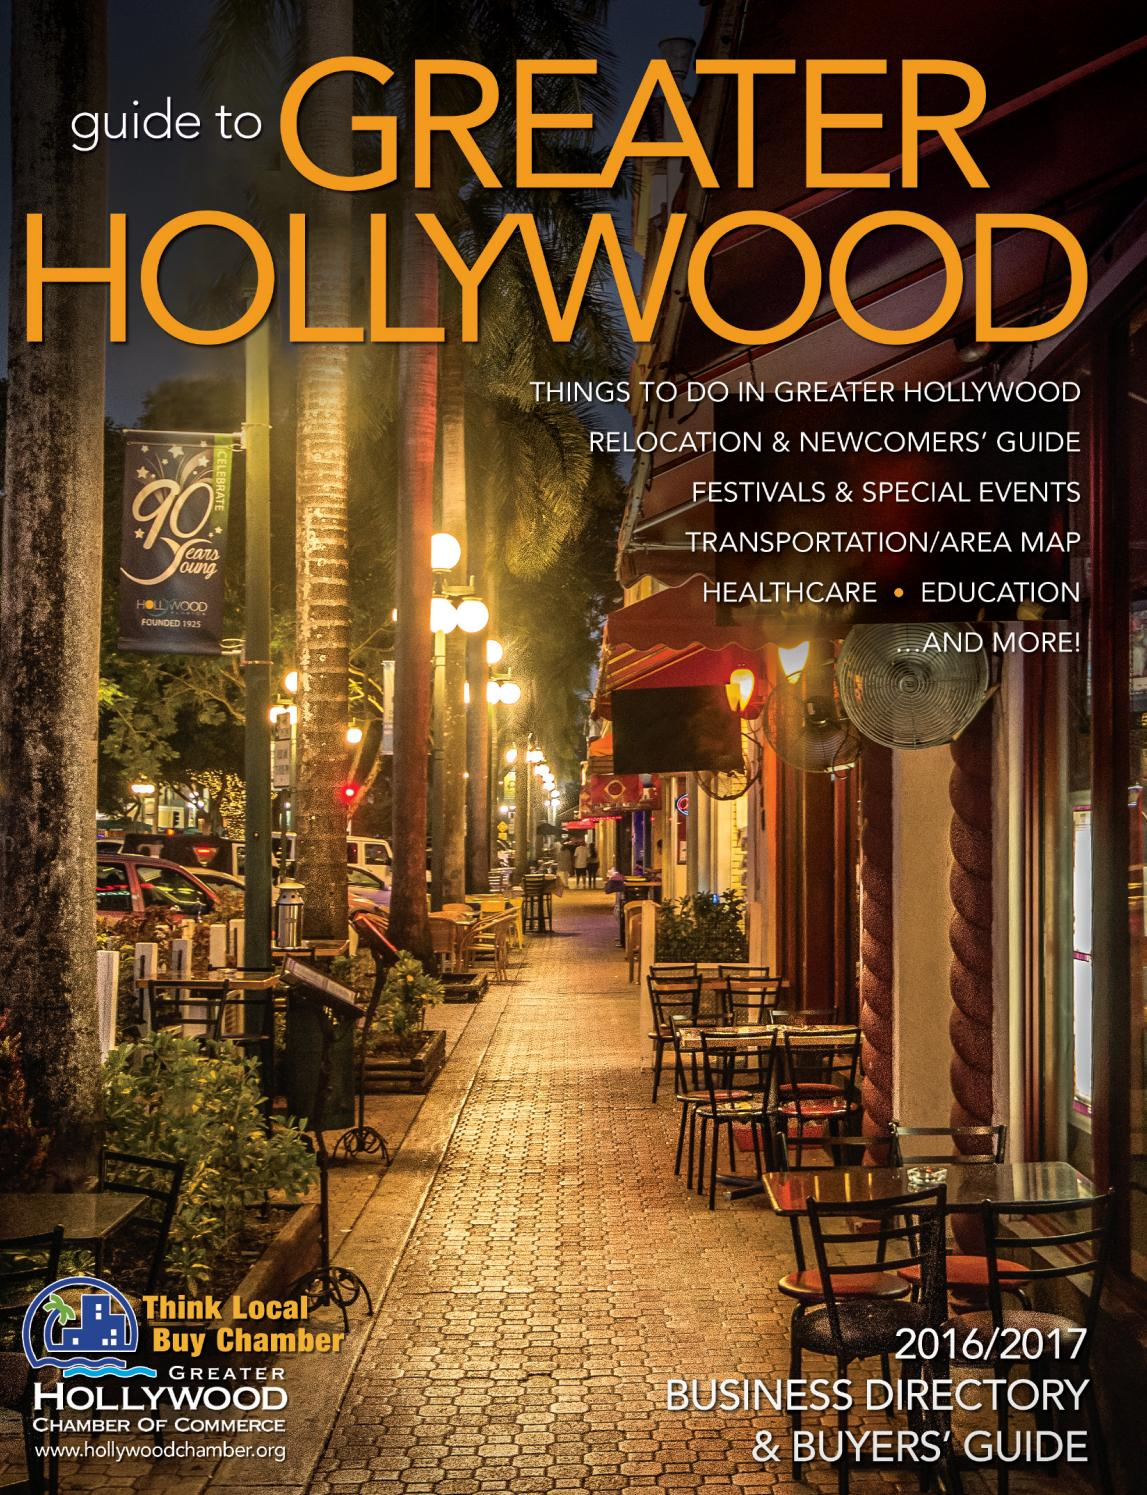 Greater Hollywood Chamber Of Commerce 2016 2017 Business Directory Buyers Guide By Atlantic Communications Group Inc